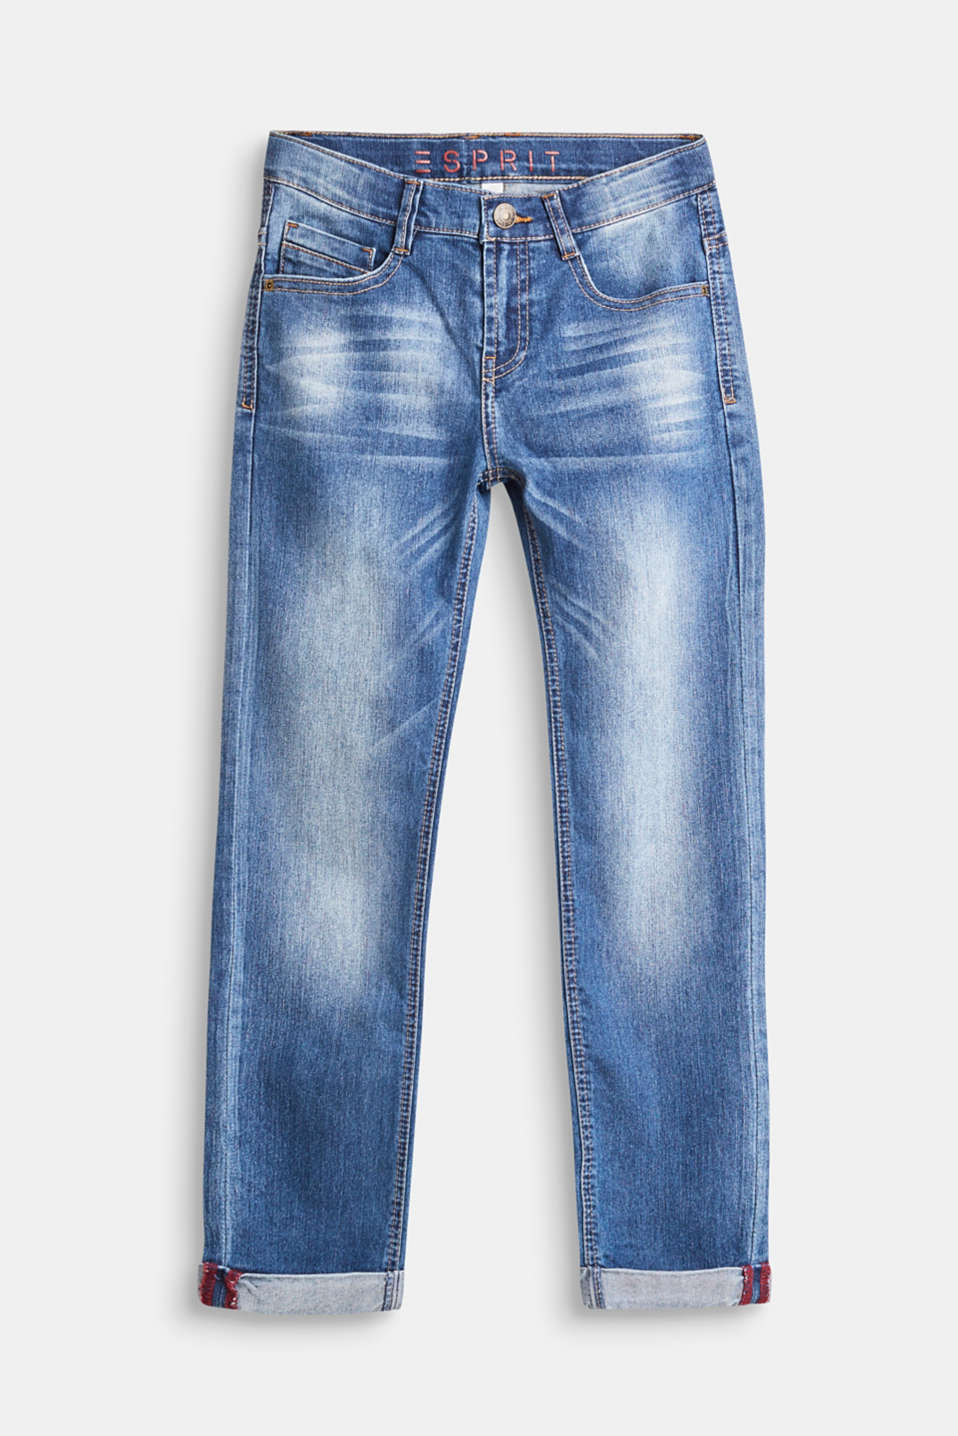 Esprit - Stretch jeans with turn-up hems, adjustable waist